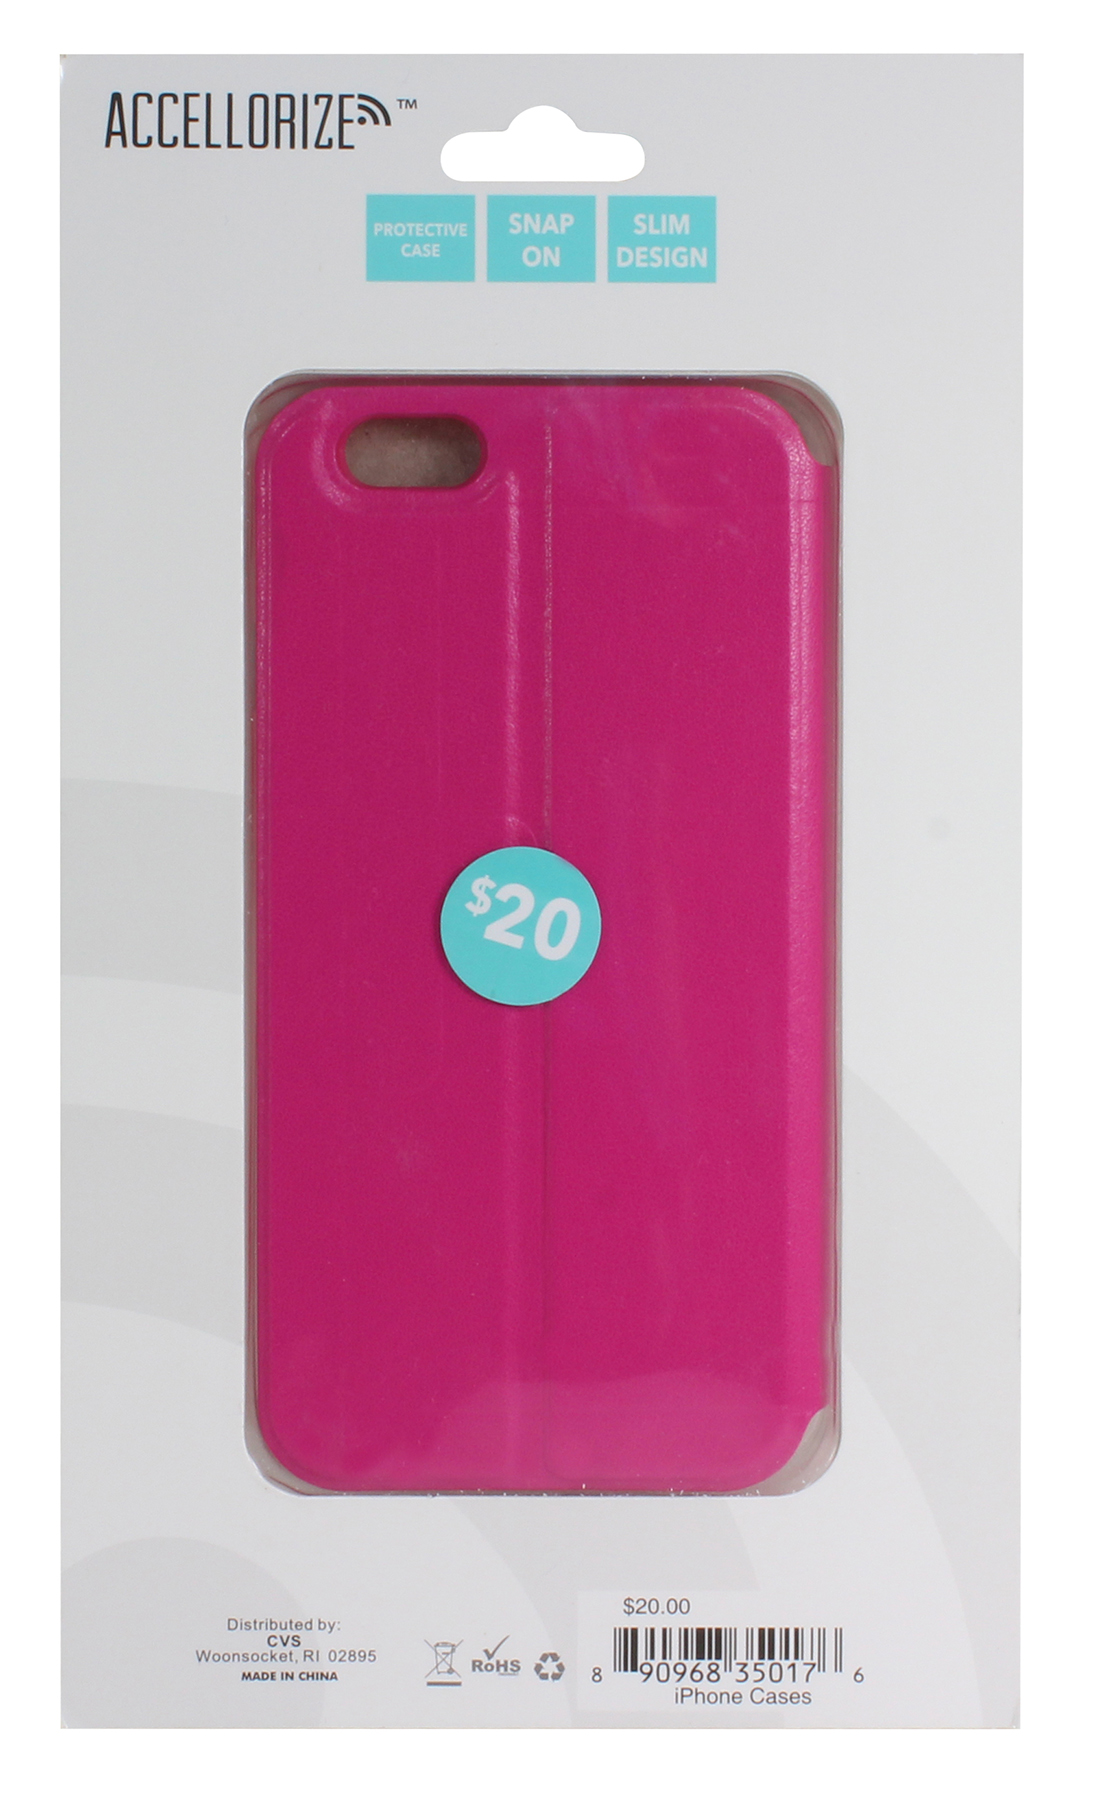 ACCELLORIZE 35017 PINK PROTECTIVE CASE FOR IPHONE 6 MADE OF